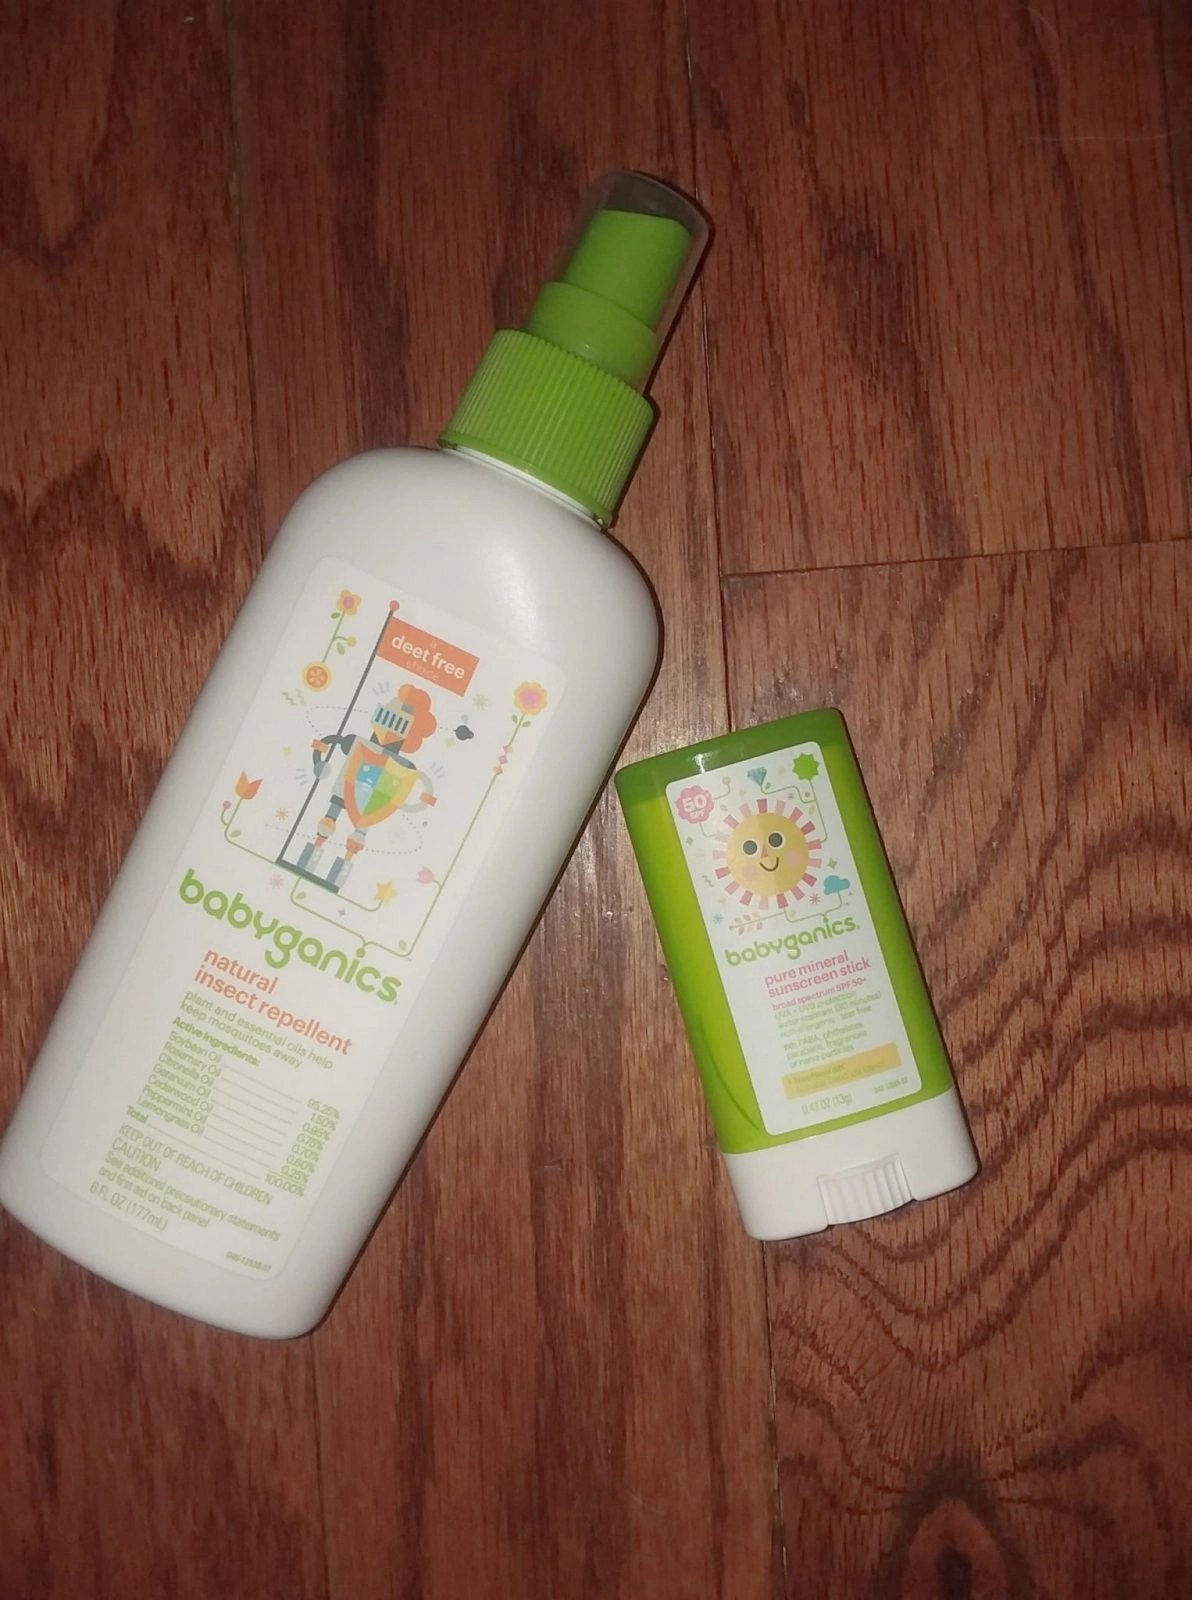 Babyganic Bug Repellent and Sunscreen Stick